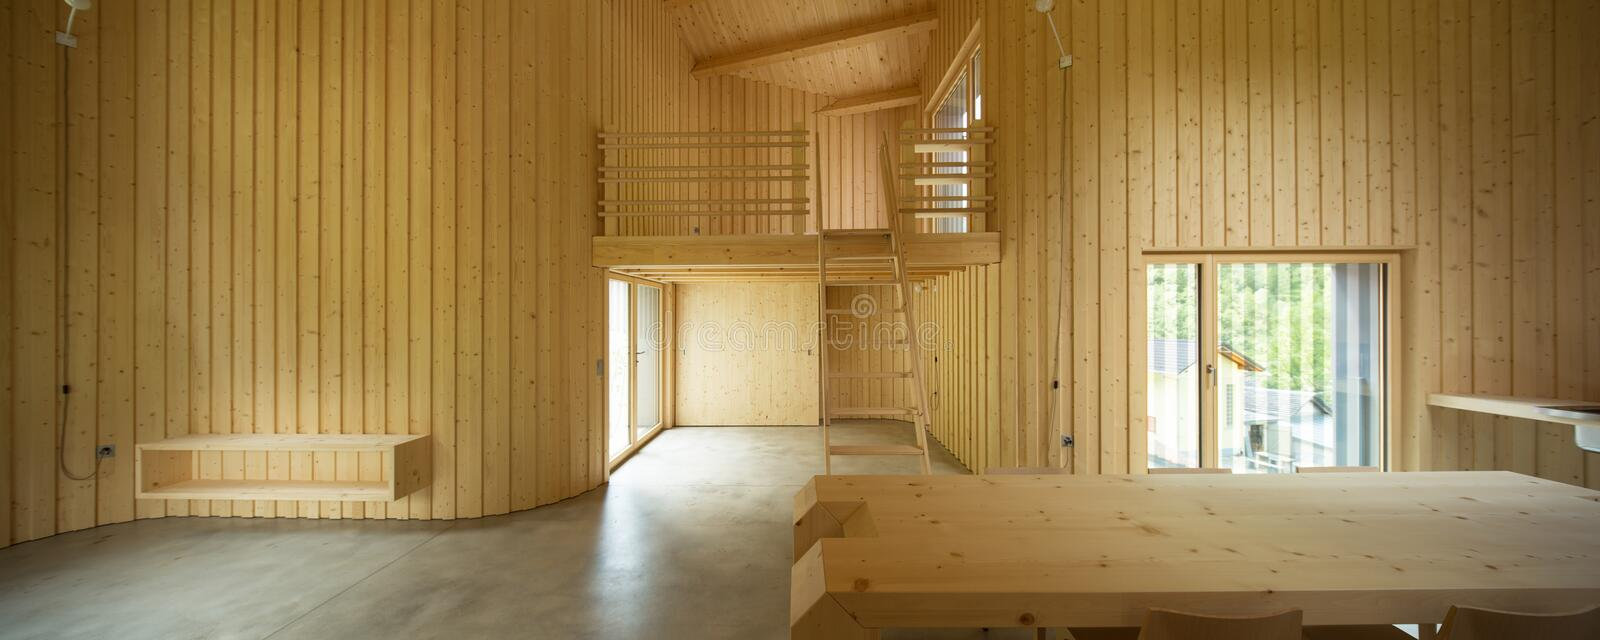 Interior of modern wooden house. Modern house, wooden interiors open space. Project by Daniel Buren and Davide Macullo stock photography